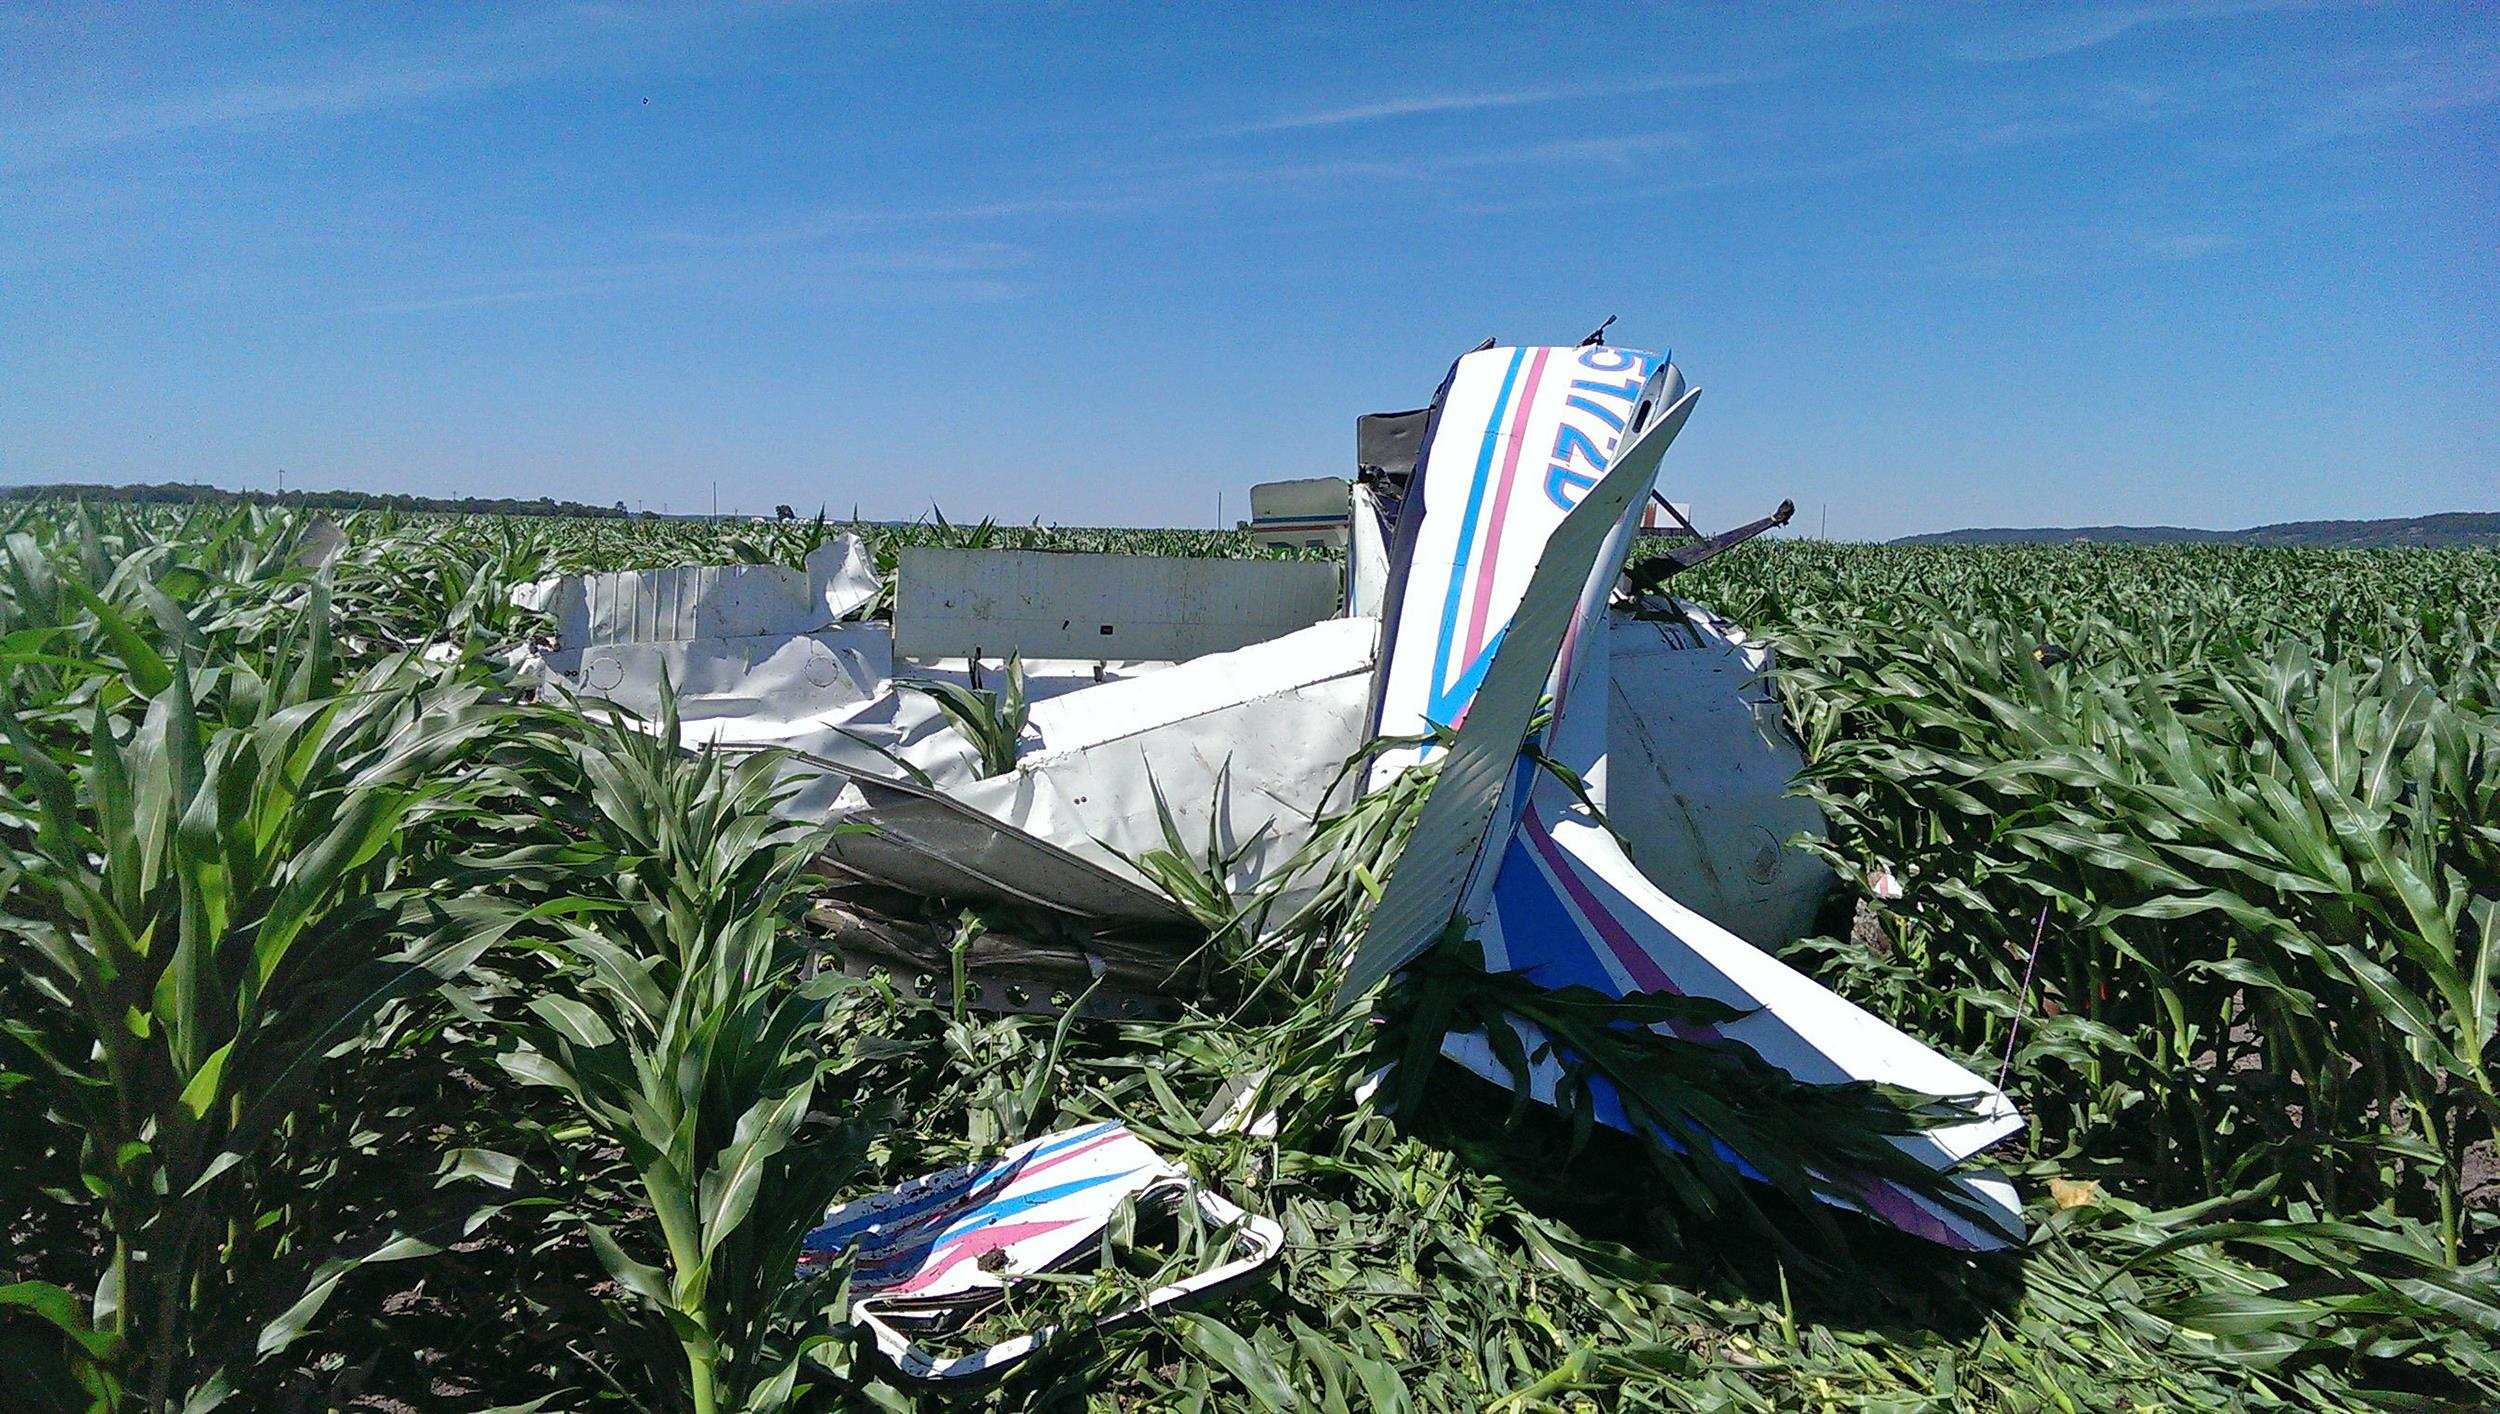 Image: The wreckage of the Cessna 182 skydiving plane that Shawn Kinmartin was flying rests in a cornfield Saturday